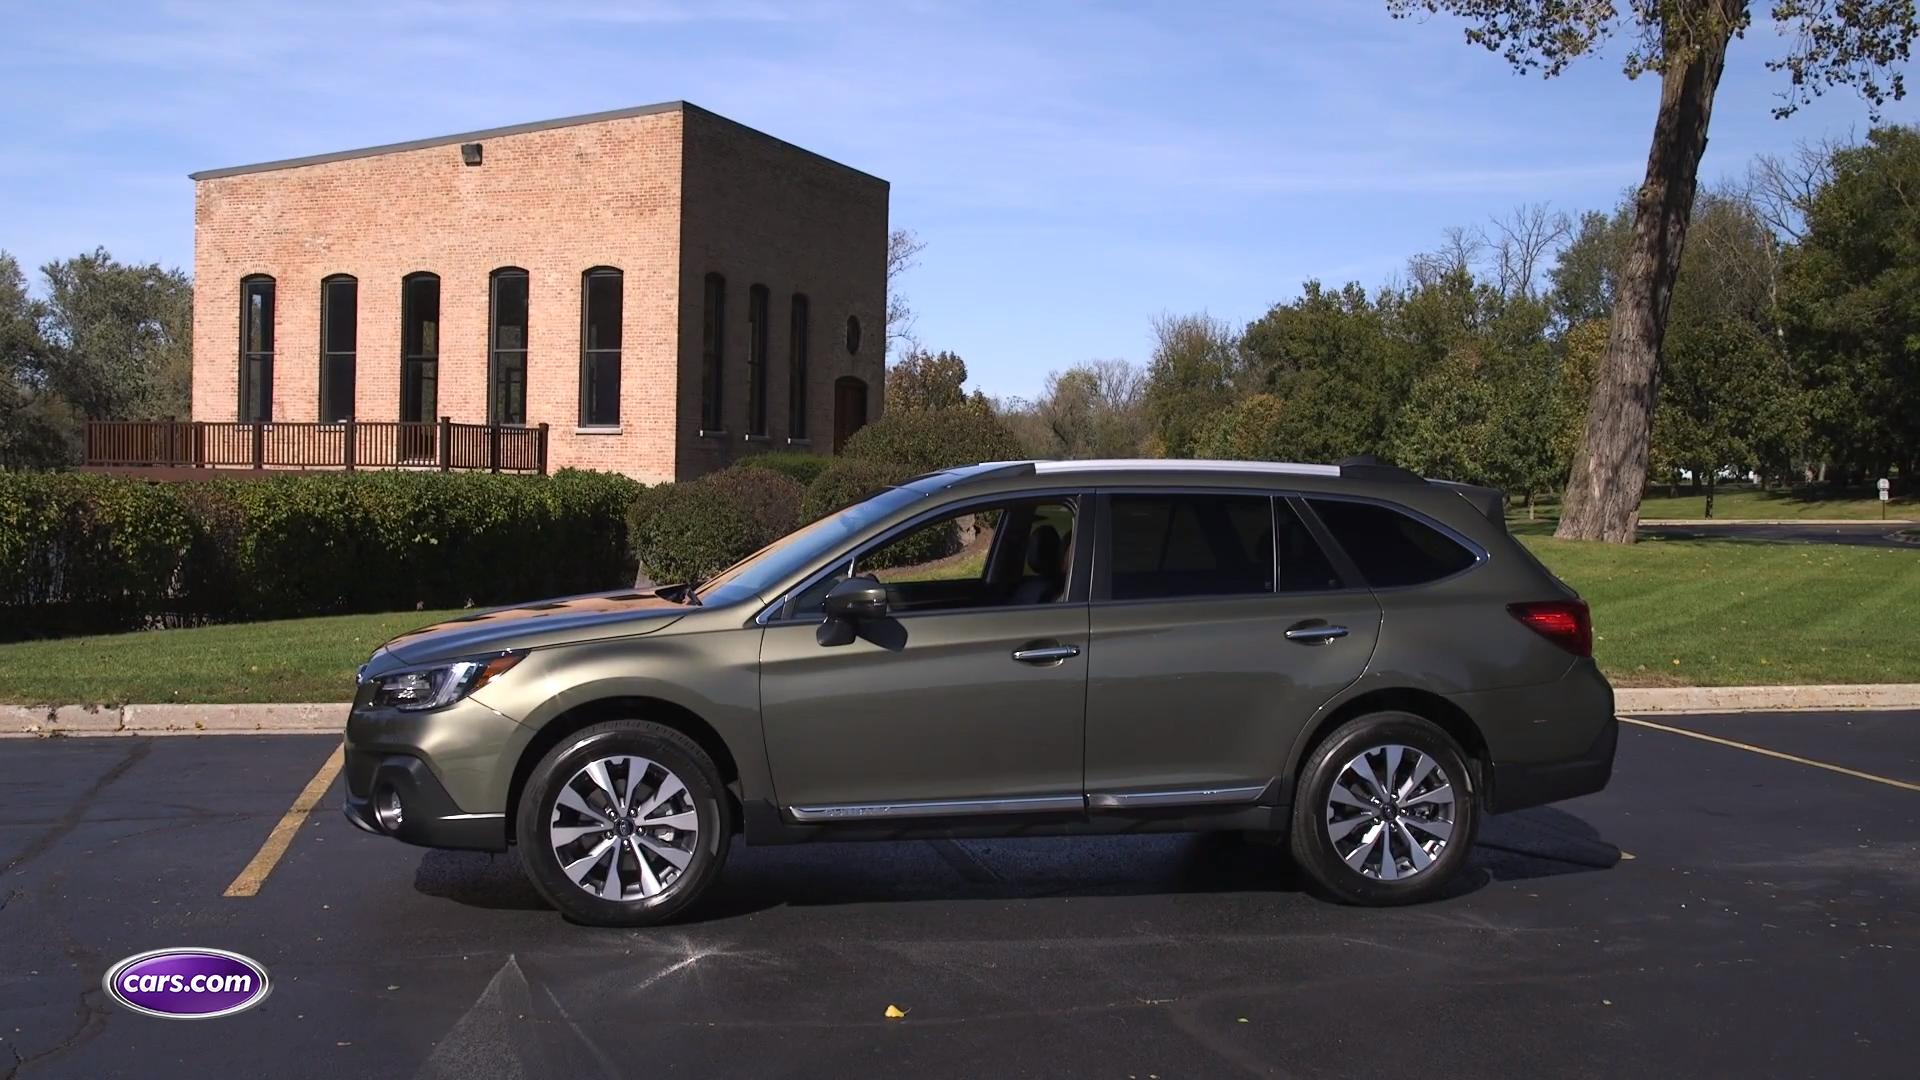 Video: 2018 Subaru Outback Review – Cars.com